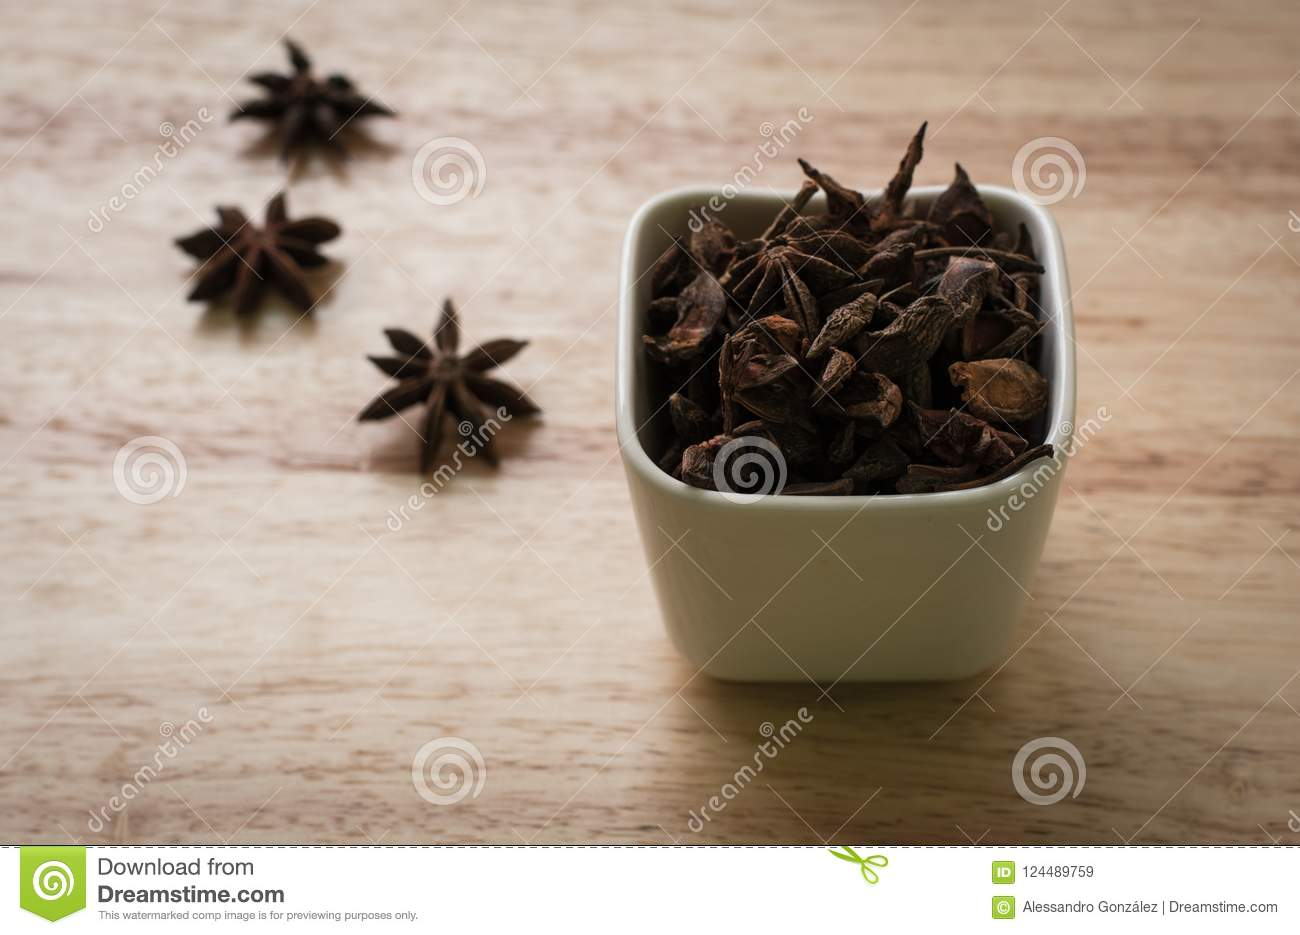 Star anise in ceramic container